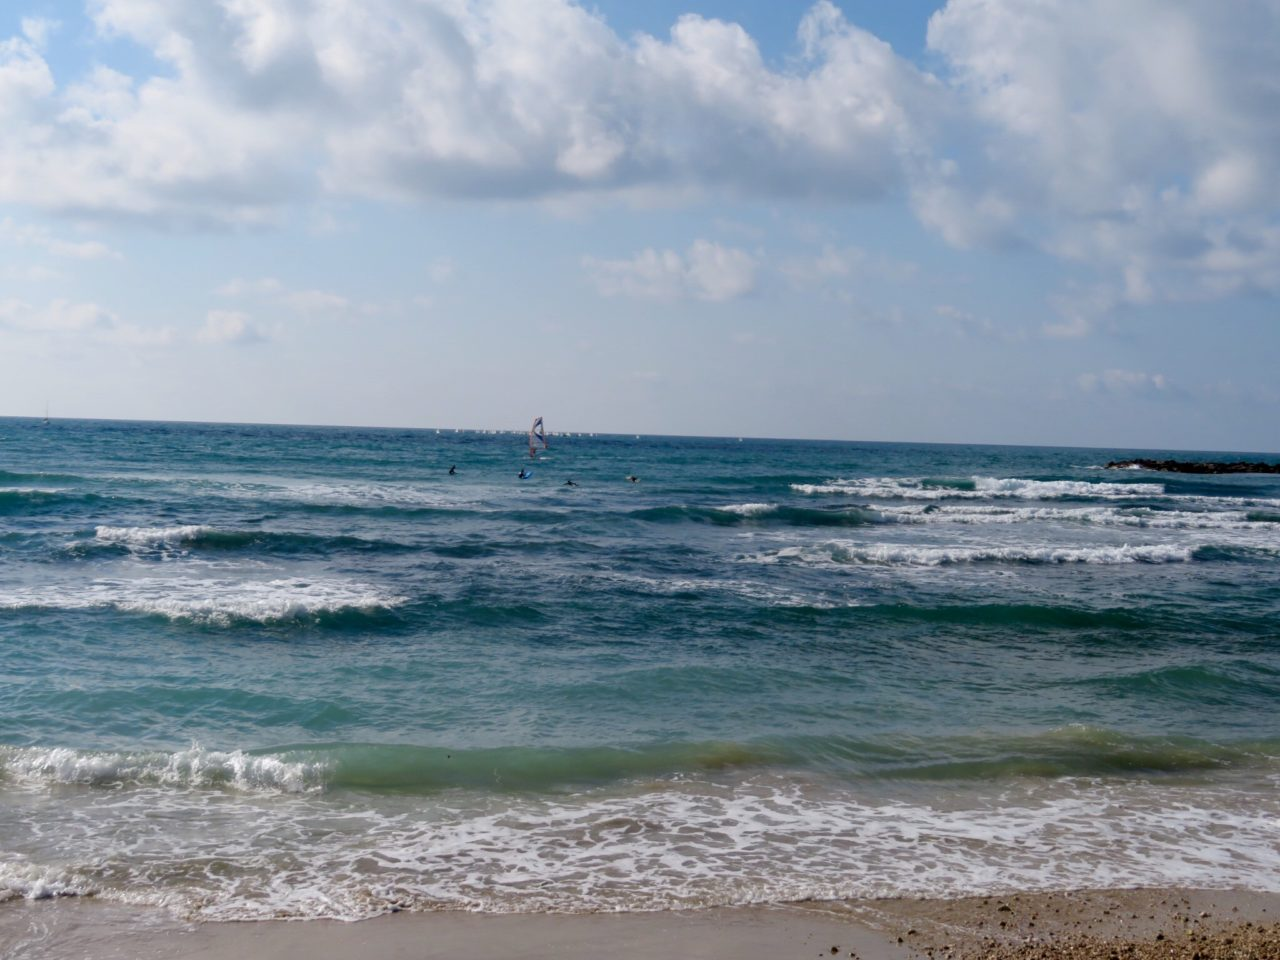 Tel Aviv Beach : Surfer's Beach